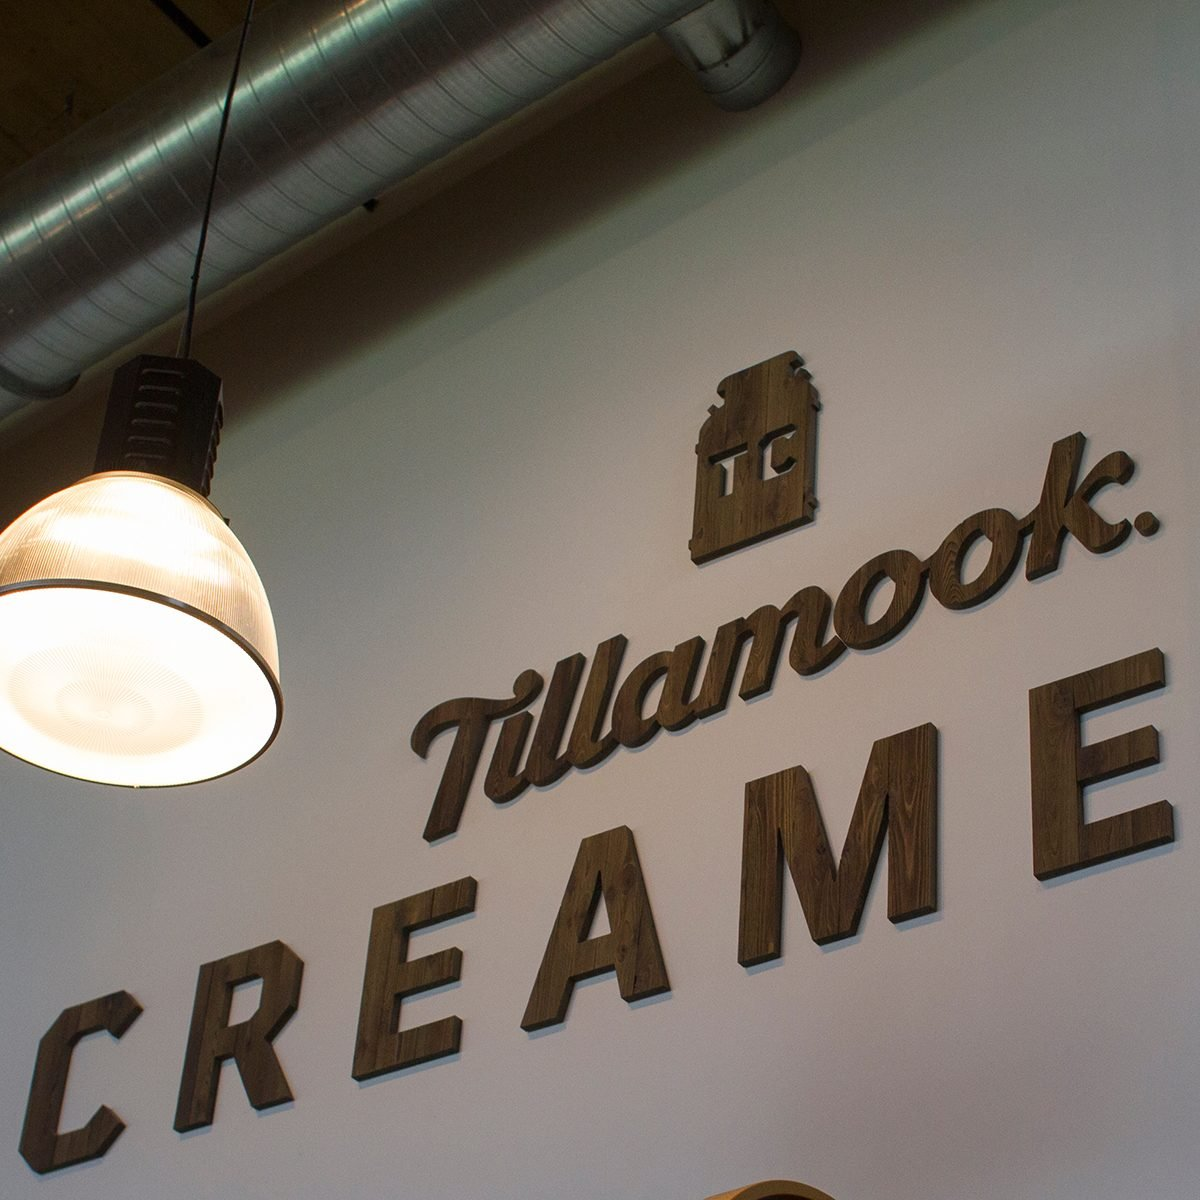 Tillamook logo in the cafe at the Tillamook Creamery